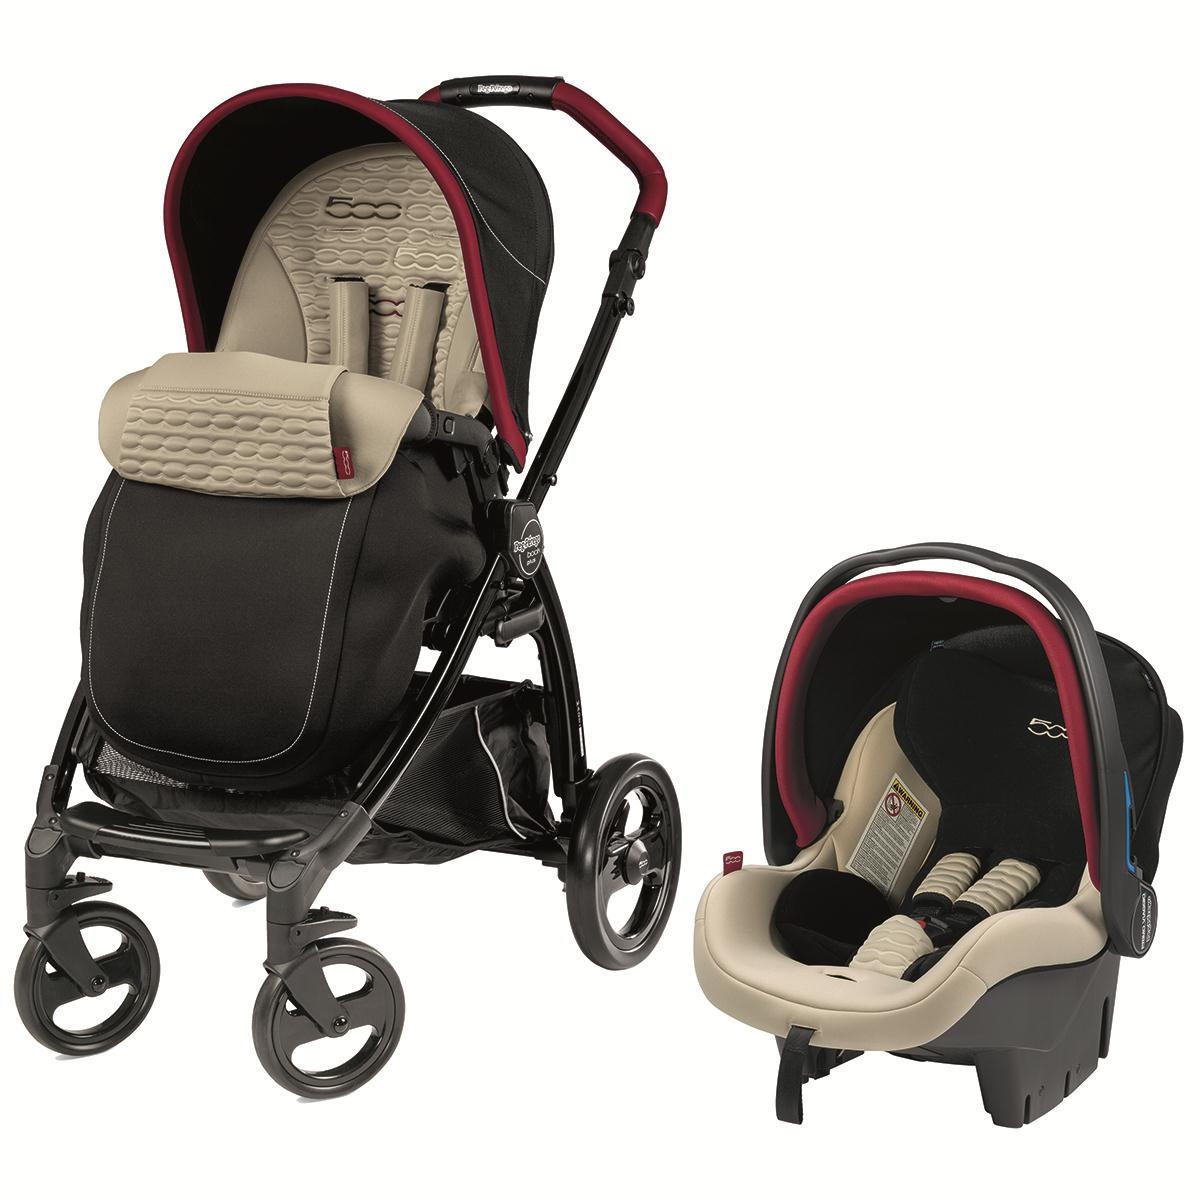 Peg Perego Book 51 Completo Yorum Peg Perego Book Plus Sl 500 Pop Up Completo Travel Sistem Bebek Arabası